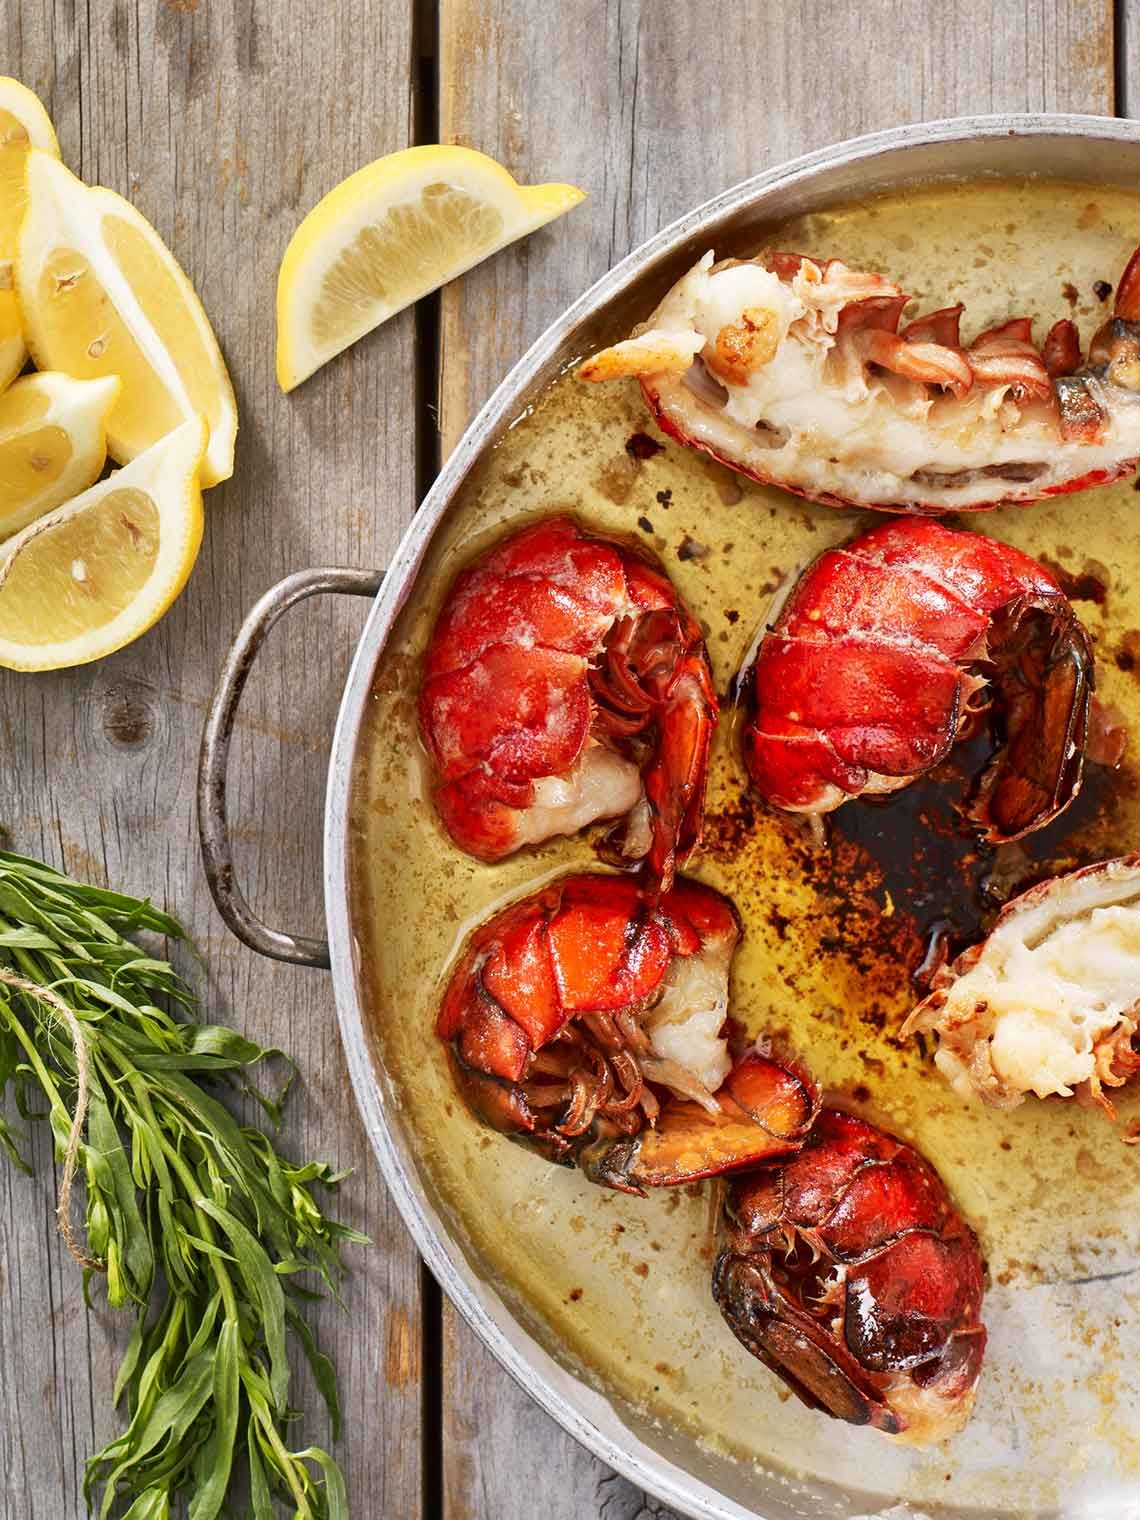 Sweet Tender Maine New Shell Tails Poached In Butter And Herbs Hungry Yet Seafood Entrees Lobster Recipes Tail Lobster Recipes